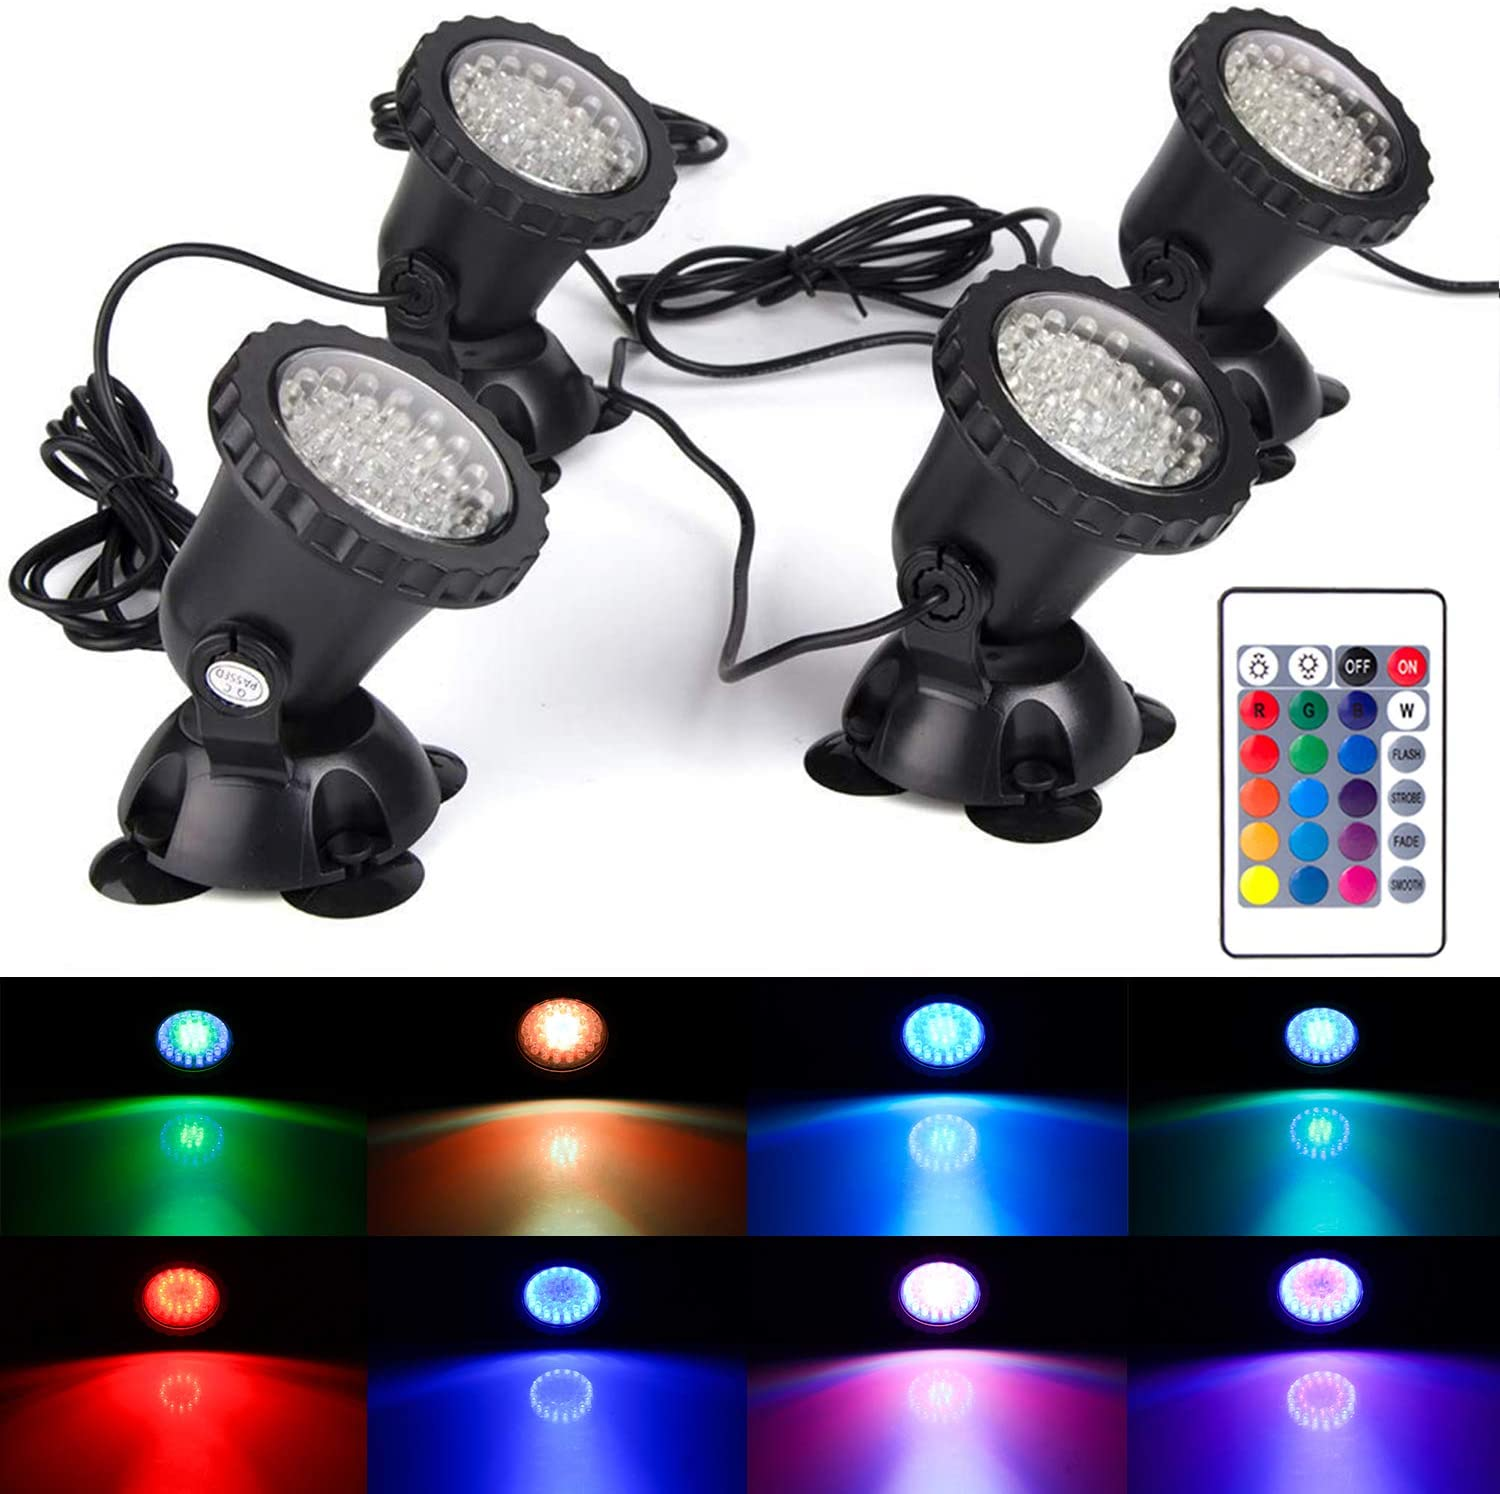 GZKANFUL Pond Light, 36 LED IP68 Waterproof Underwater Submersible Spotlight with Remote, 4 Pack Multi-Color & Adjustable & Dimmable Aquarium Light, Landscape Lamp for Fish Tank Fountain